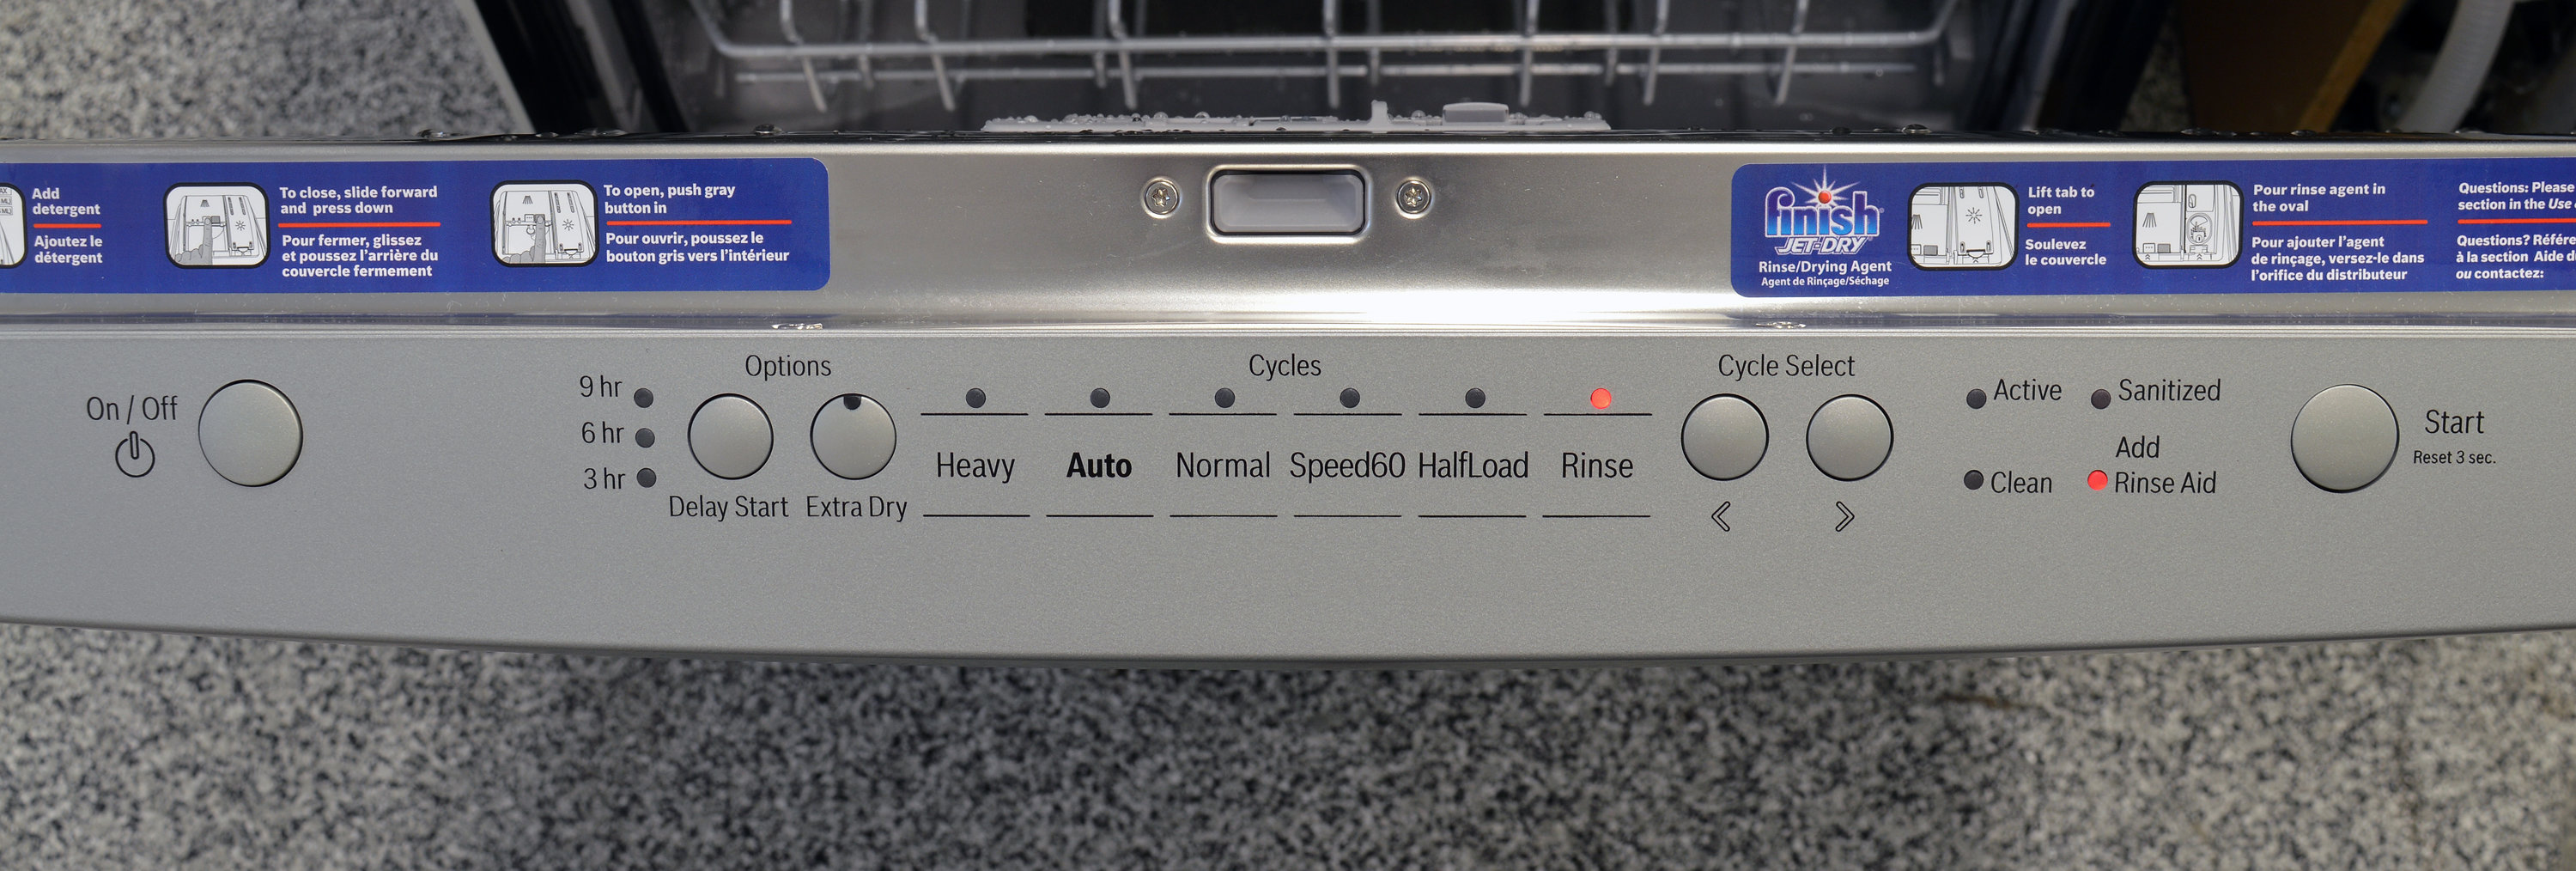 bosch dishwasher how to cancel cycle